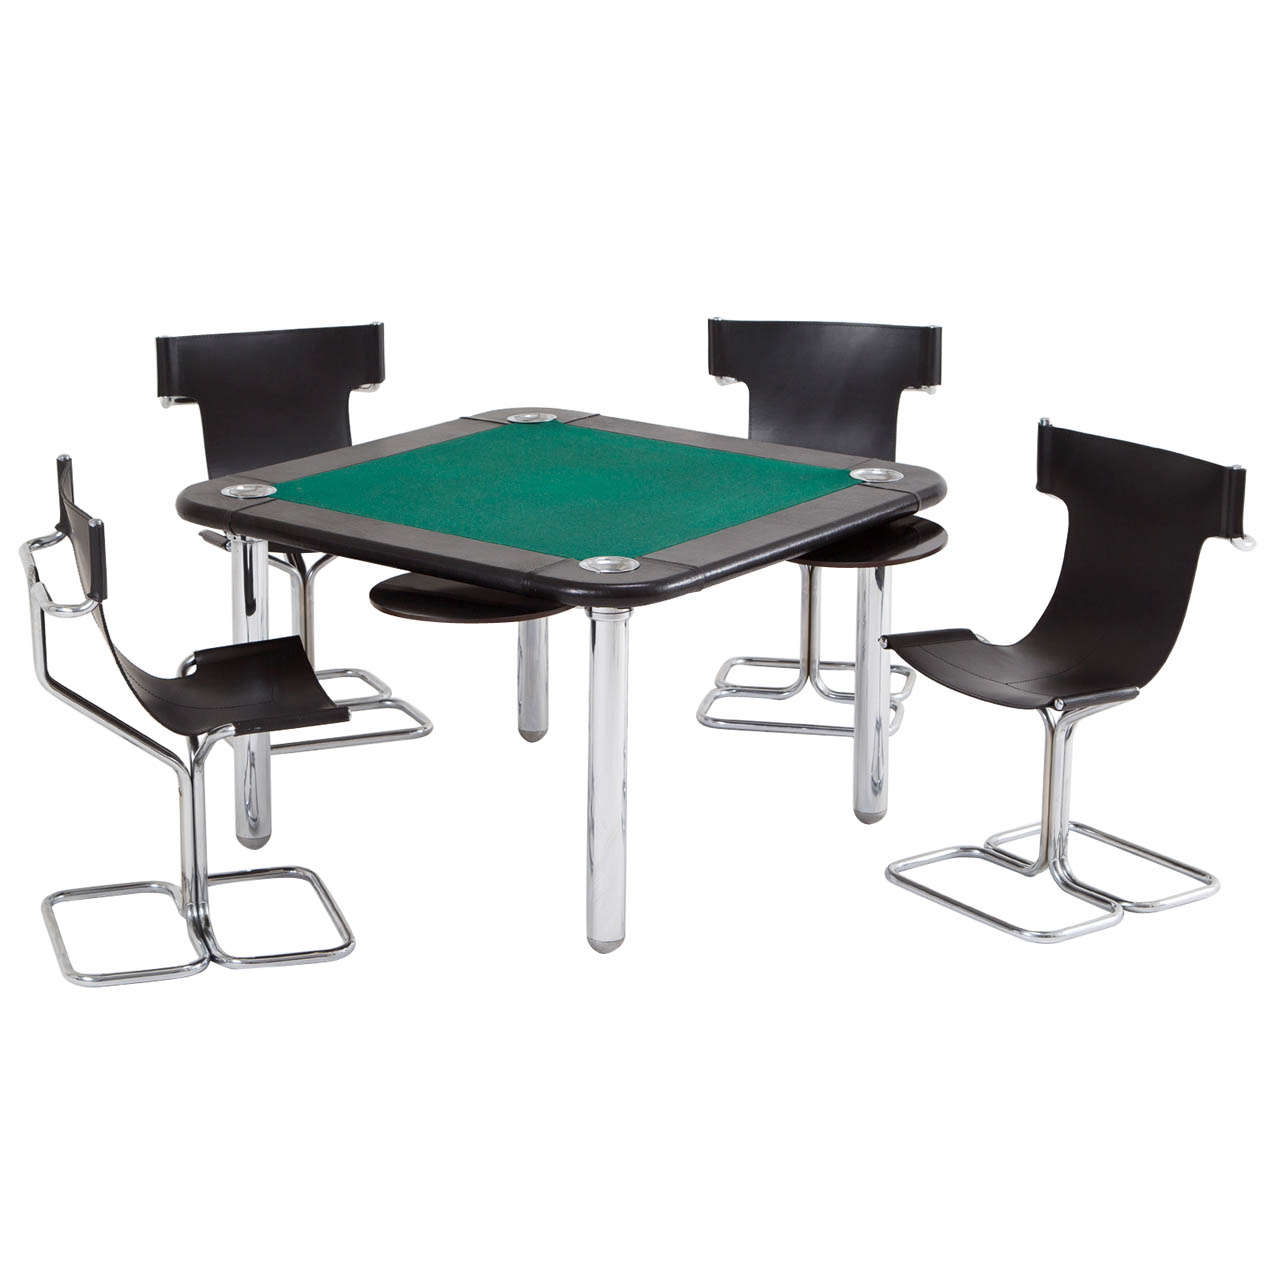 Chrome And Leather Game Card Table And Chairs For Sale At